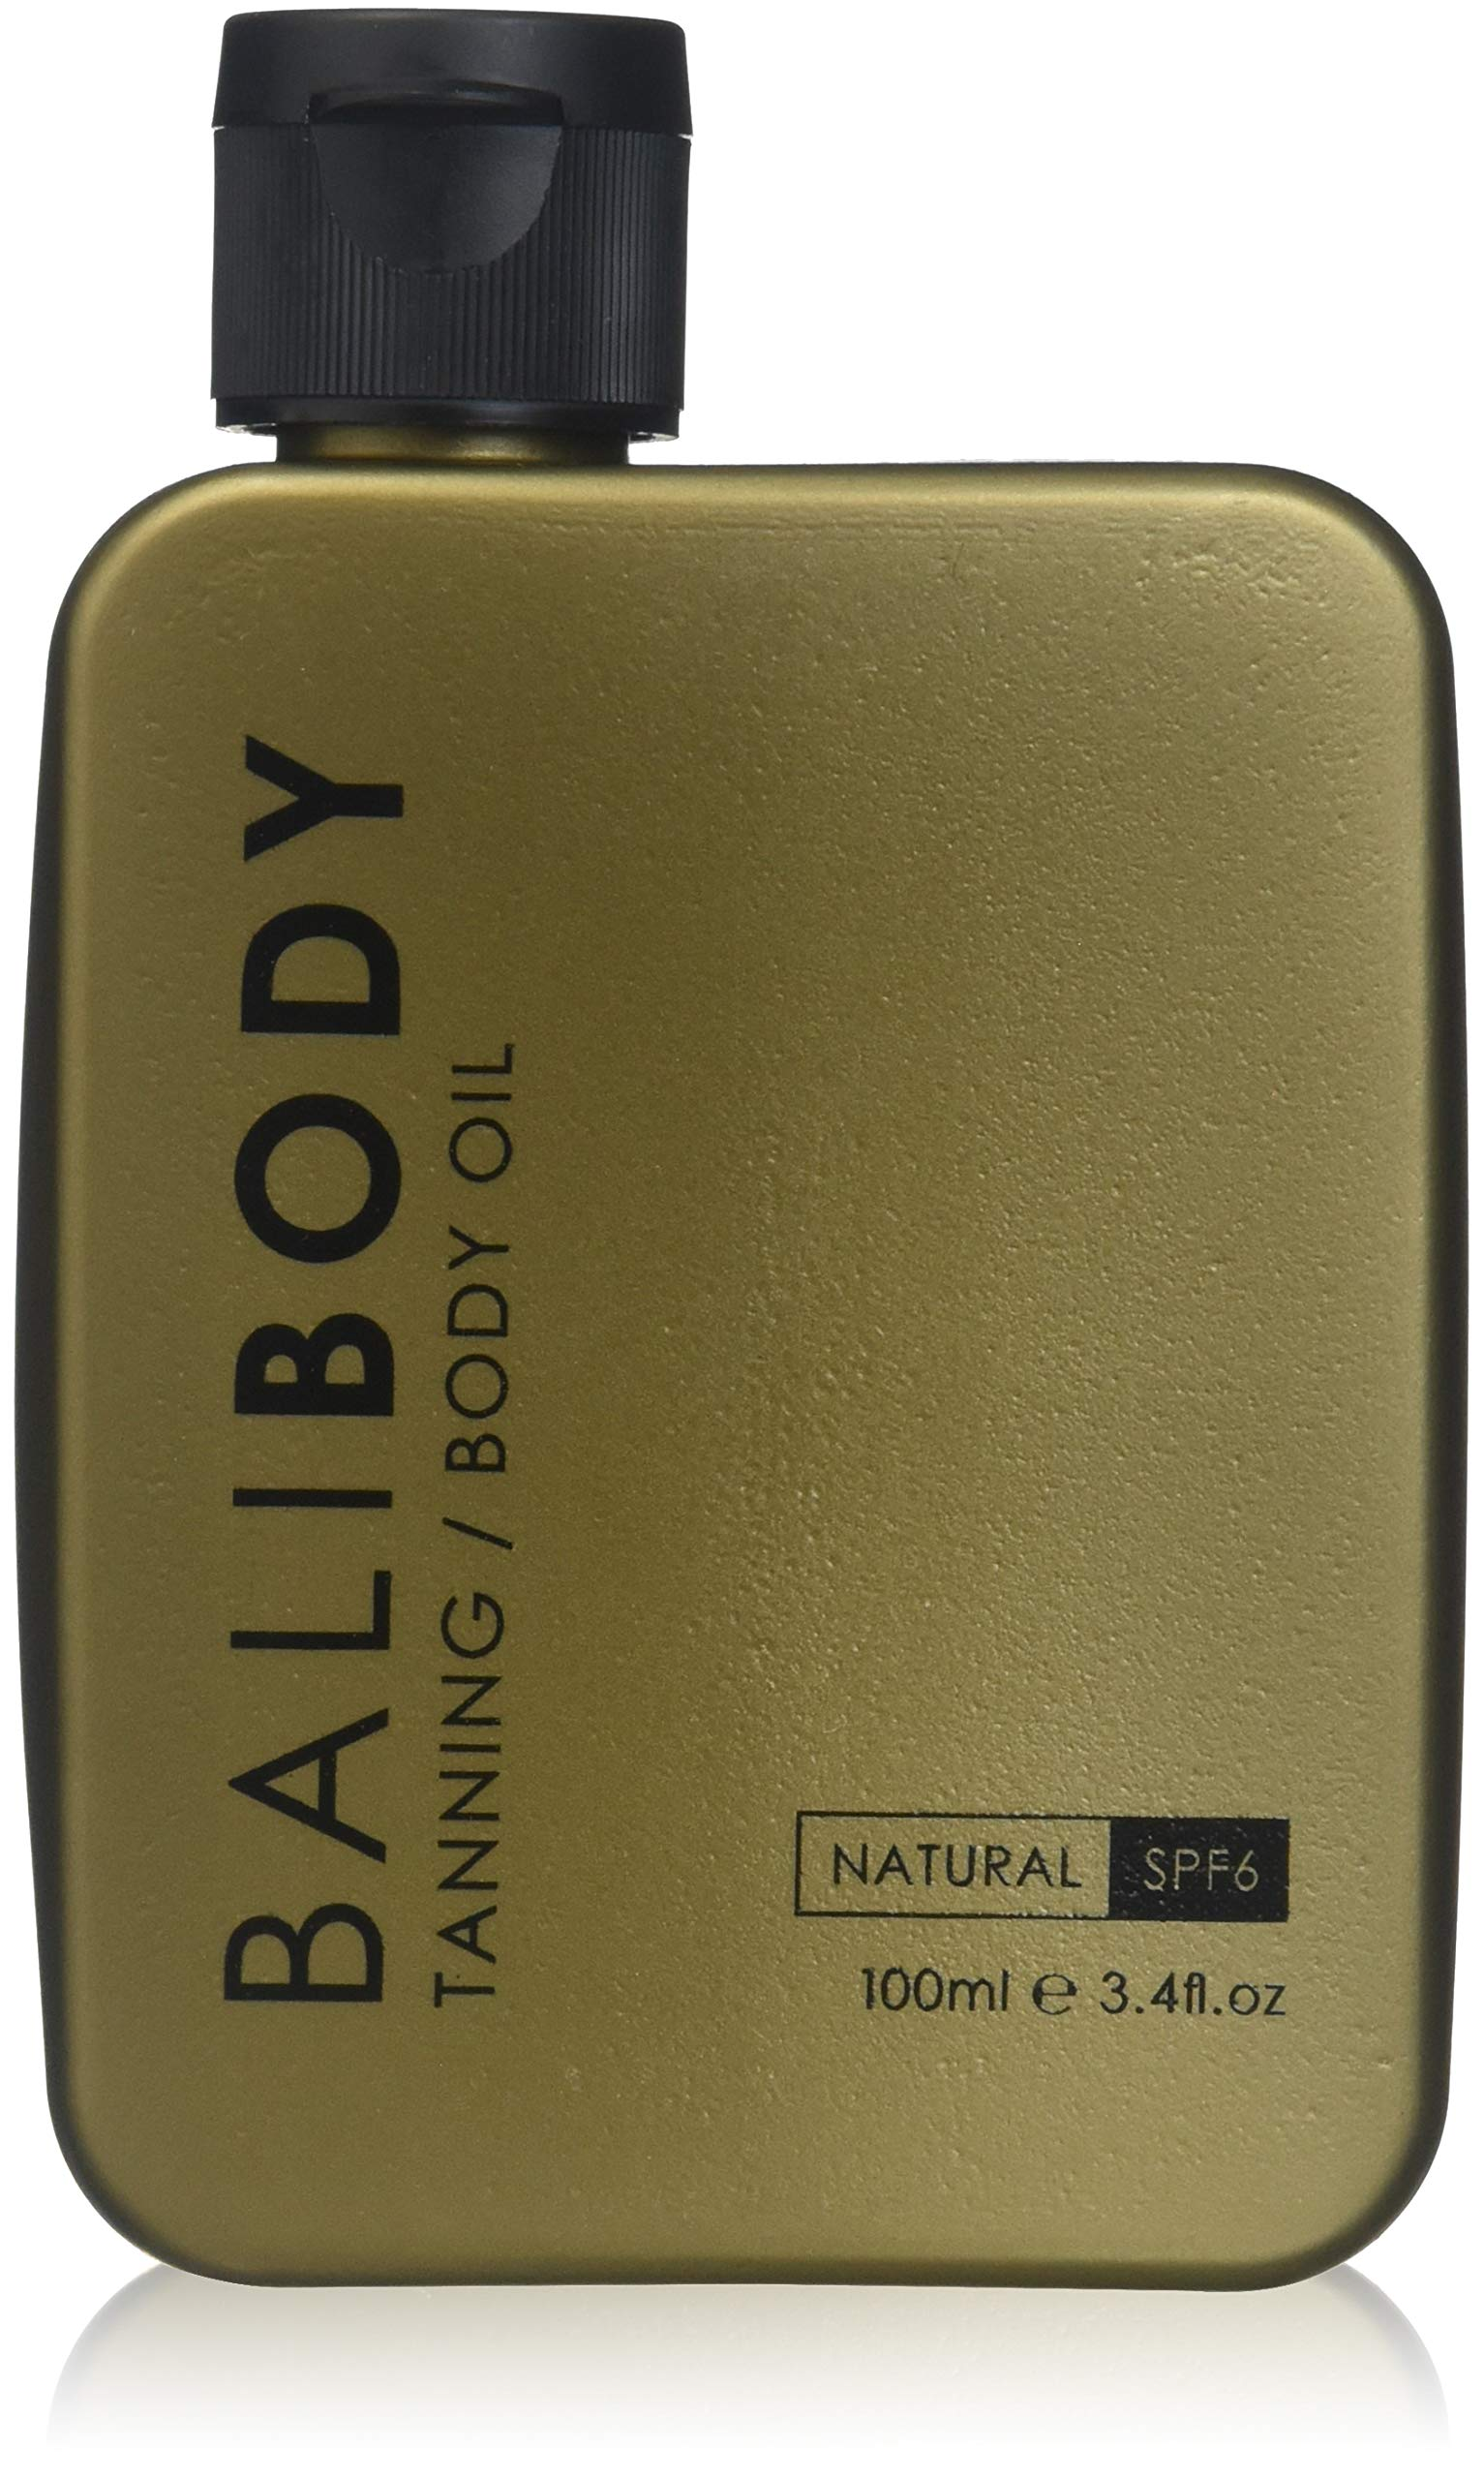 BALI BODY ORIGINAL NATURAL TANNING AND BODY OIL 110 ml